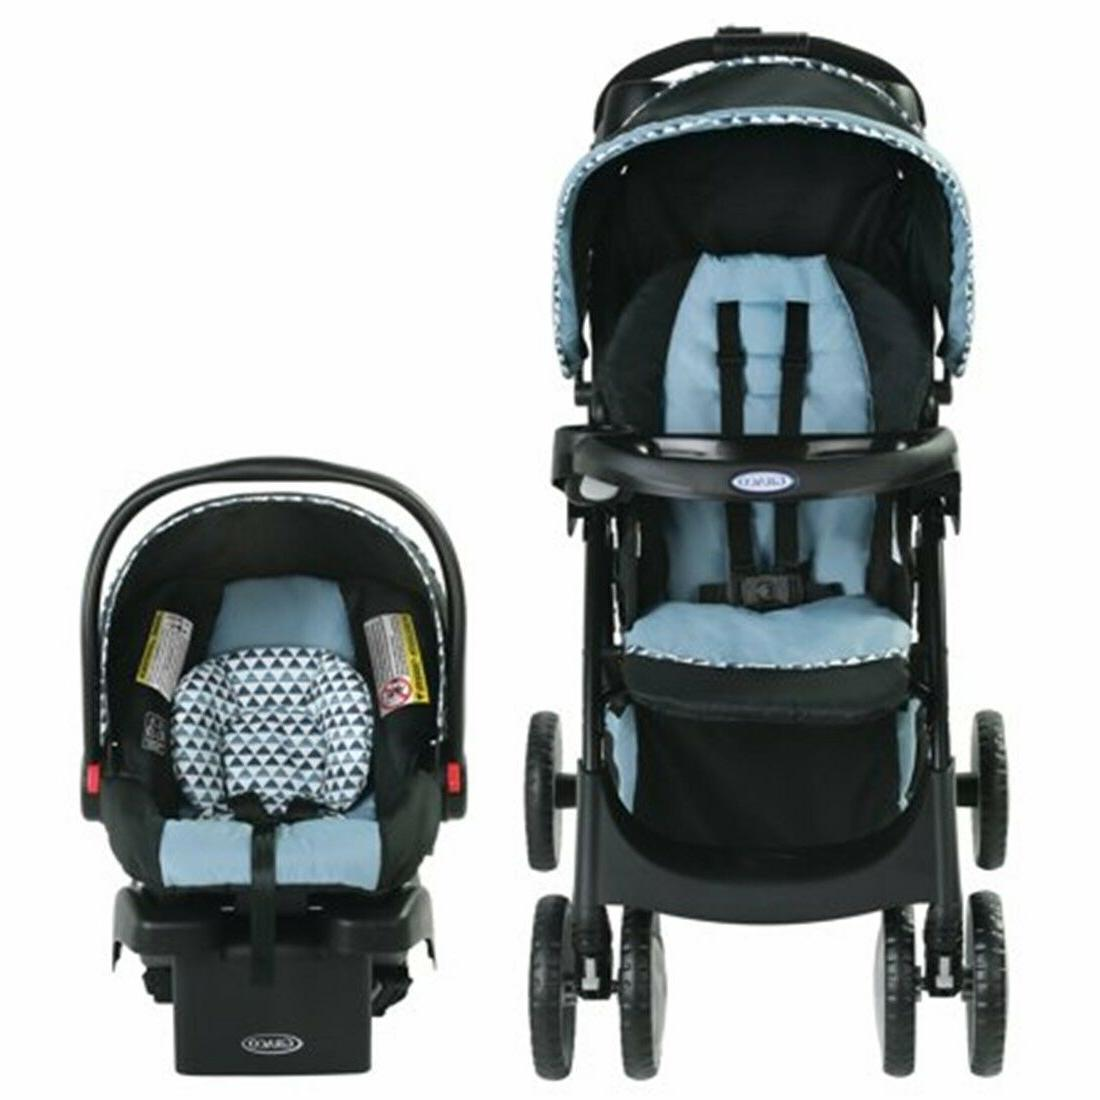 Graco Baby Stroller with Car Seat Evenflo Playard